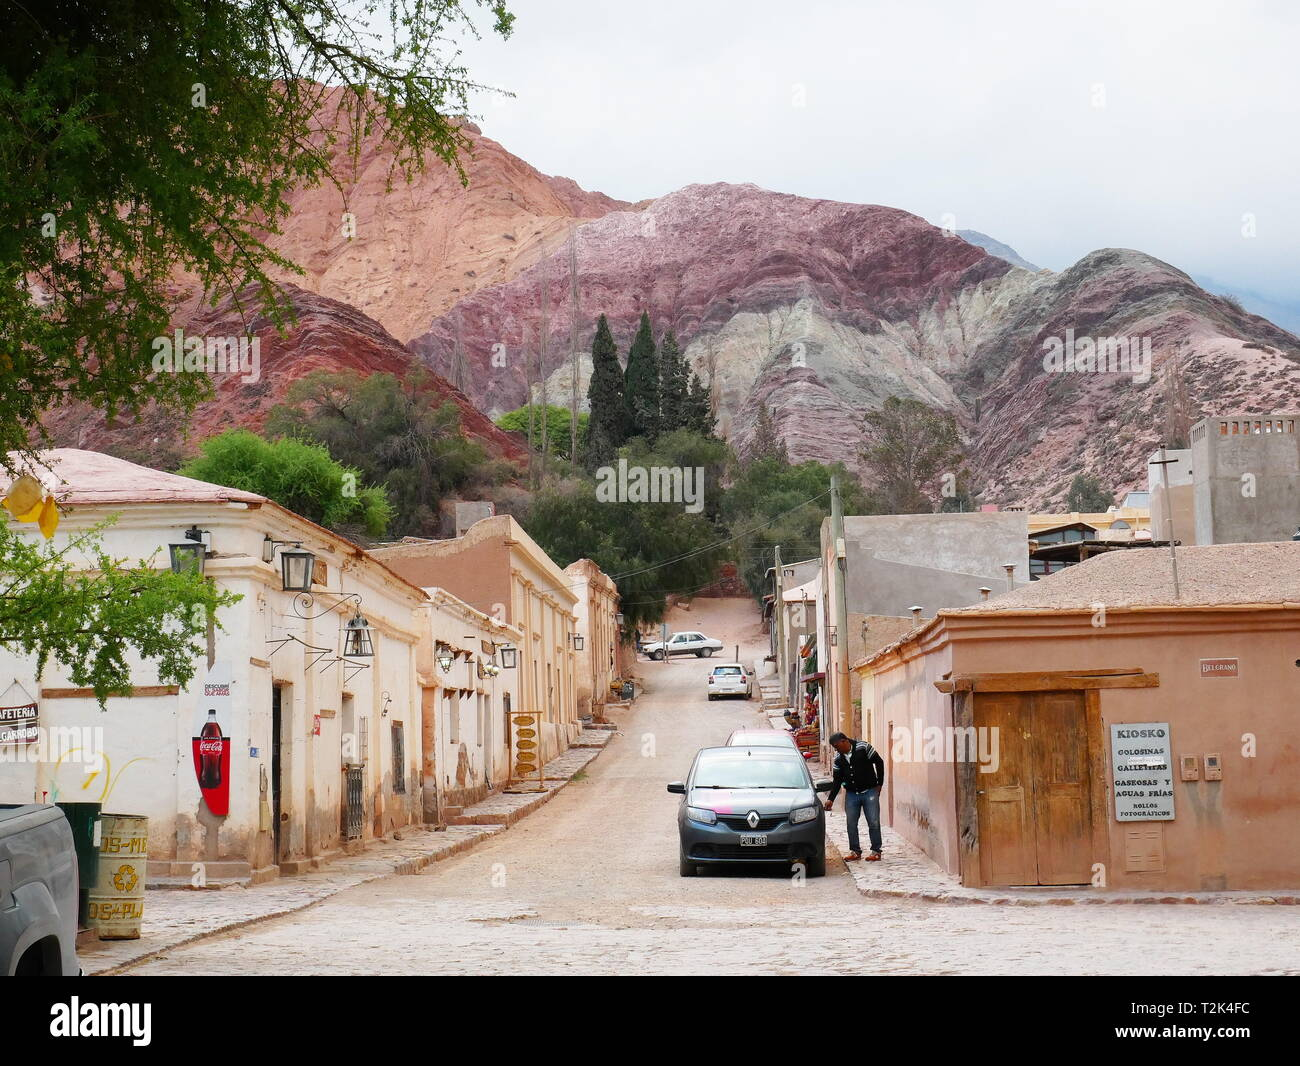 PURMAMARCA, AR - CIRCA OCT, 2018 - The colorful streets of Purmamarca, in the Quebrada de Humahuaca in Argentina. Stock Photo